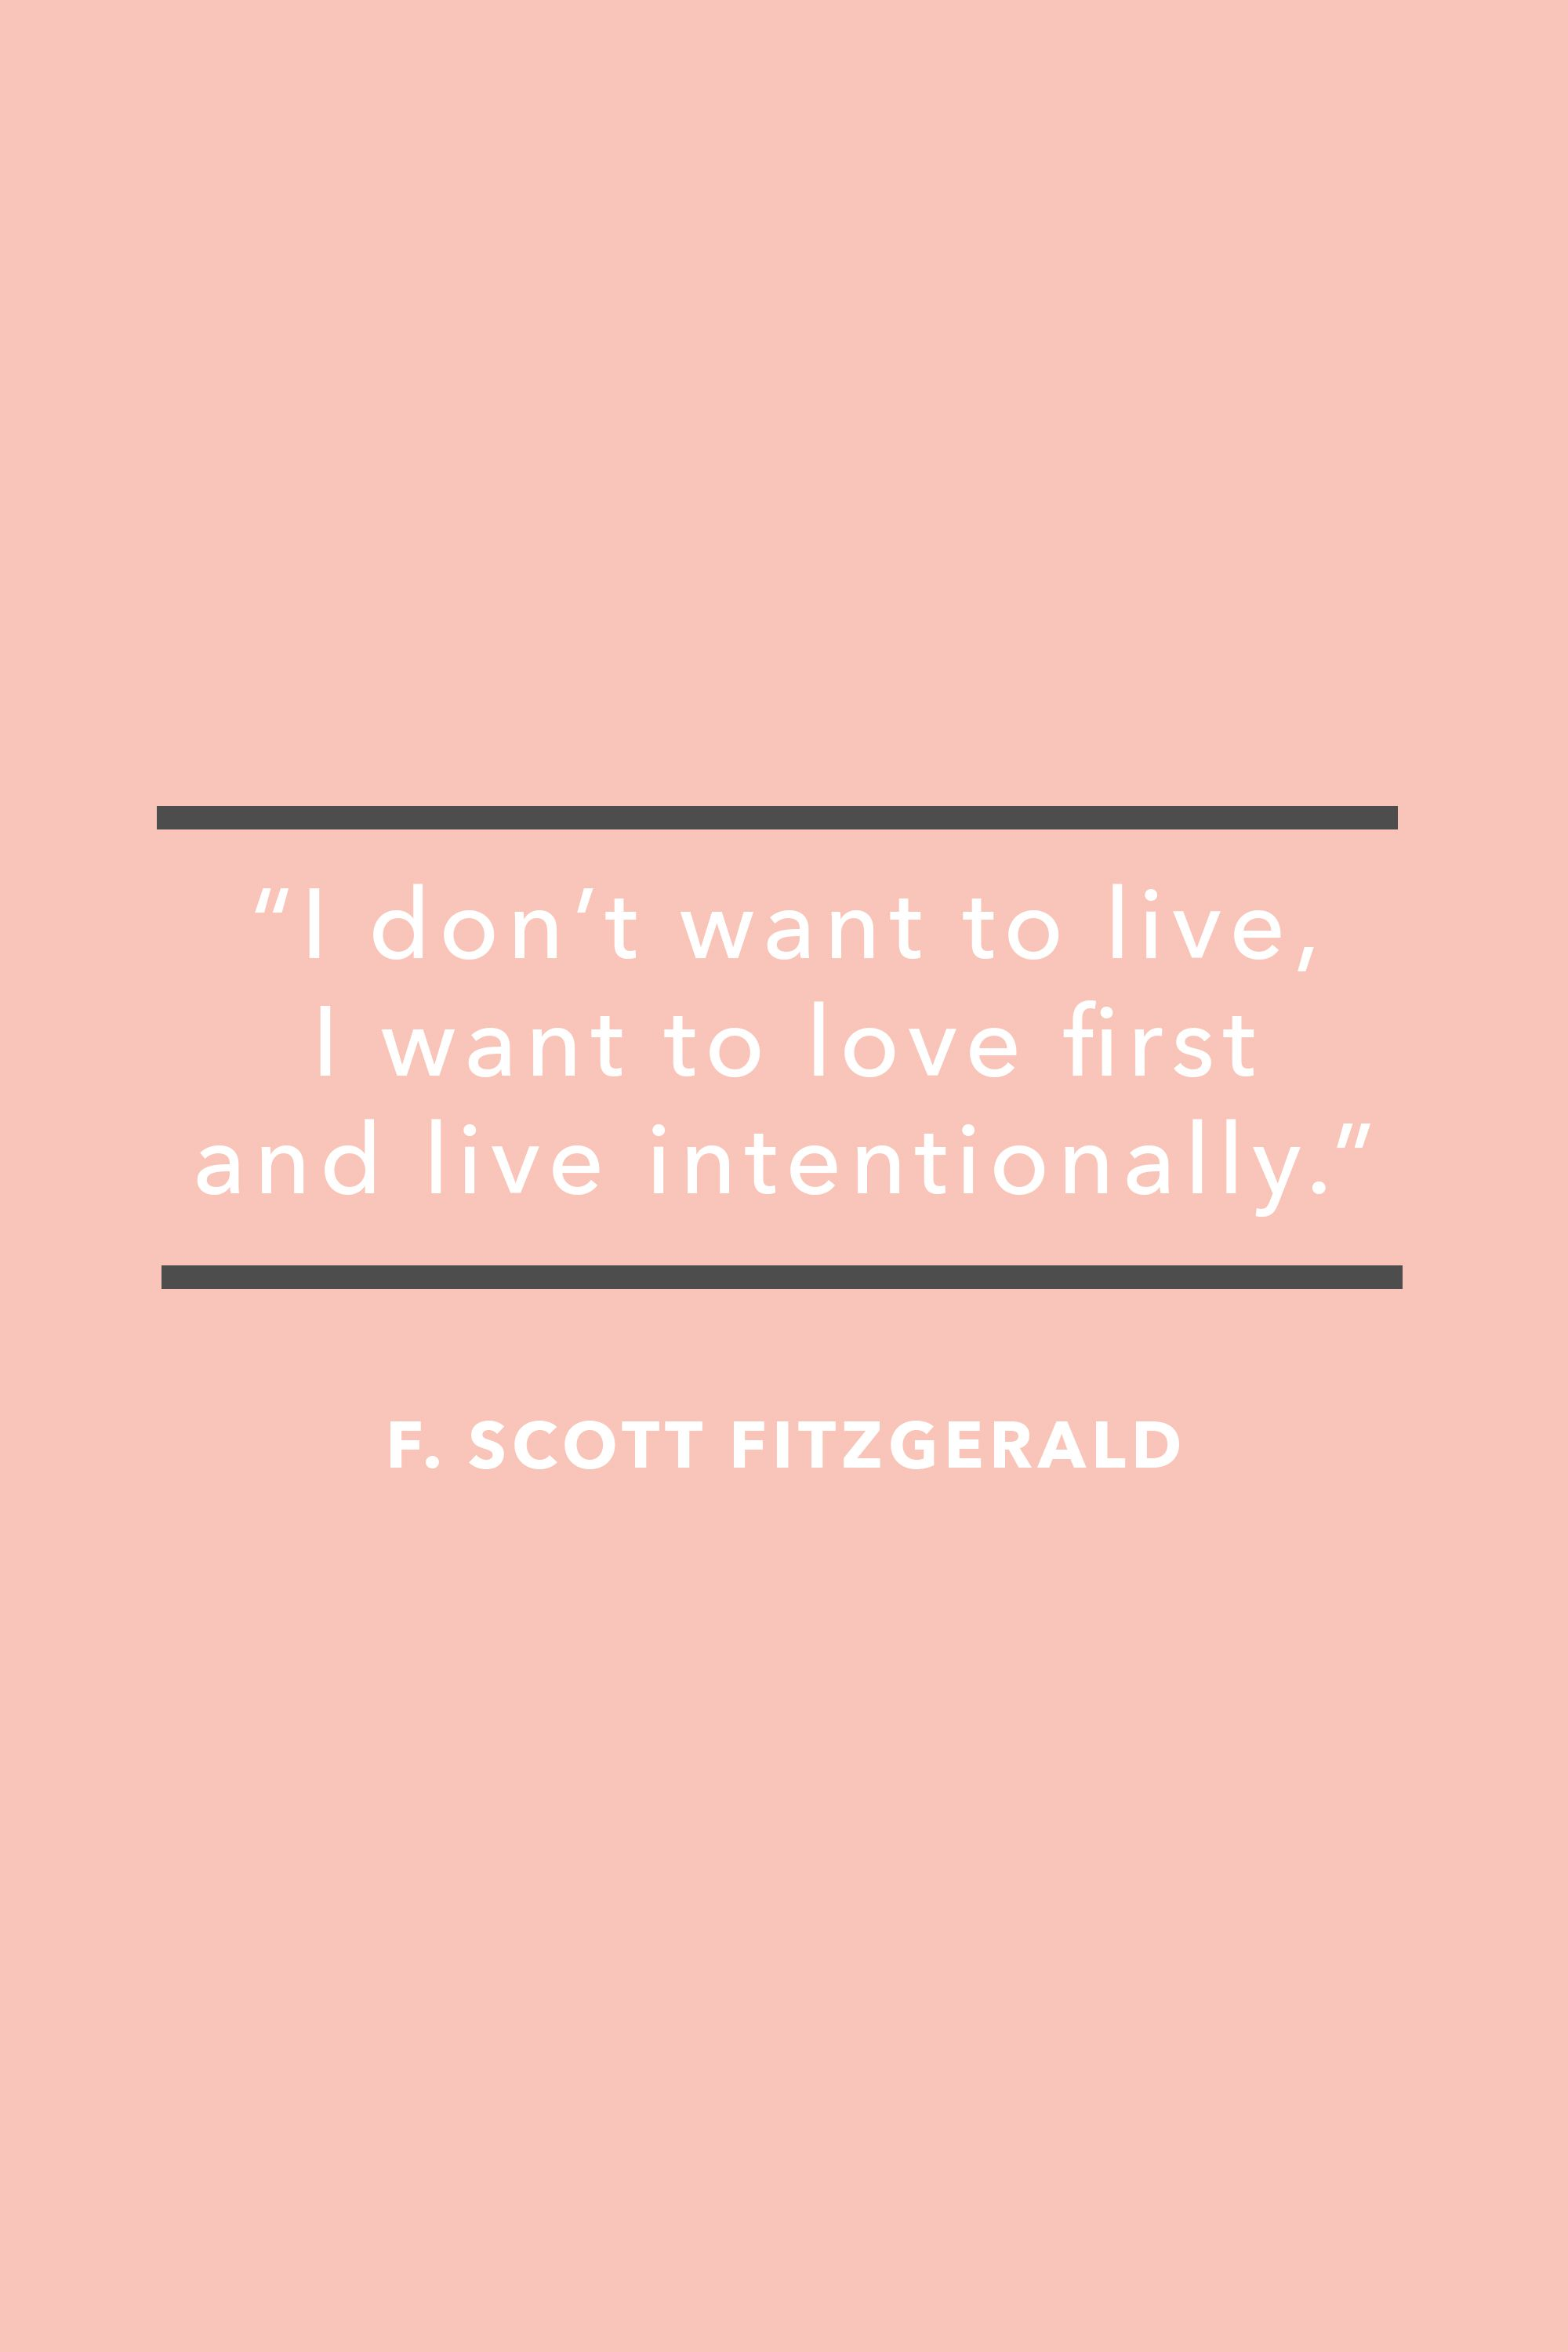 Love Quotes F Scott Fitzgerald 35 Best Valentine's Day Quotes  Cute Love Quotes